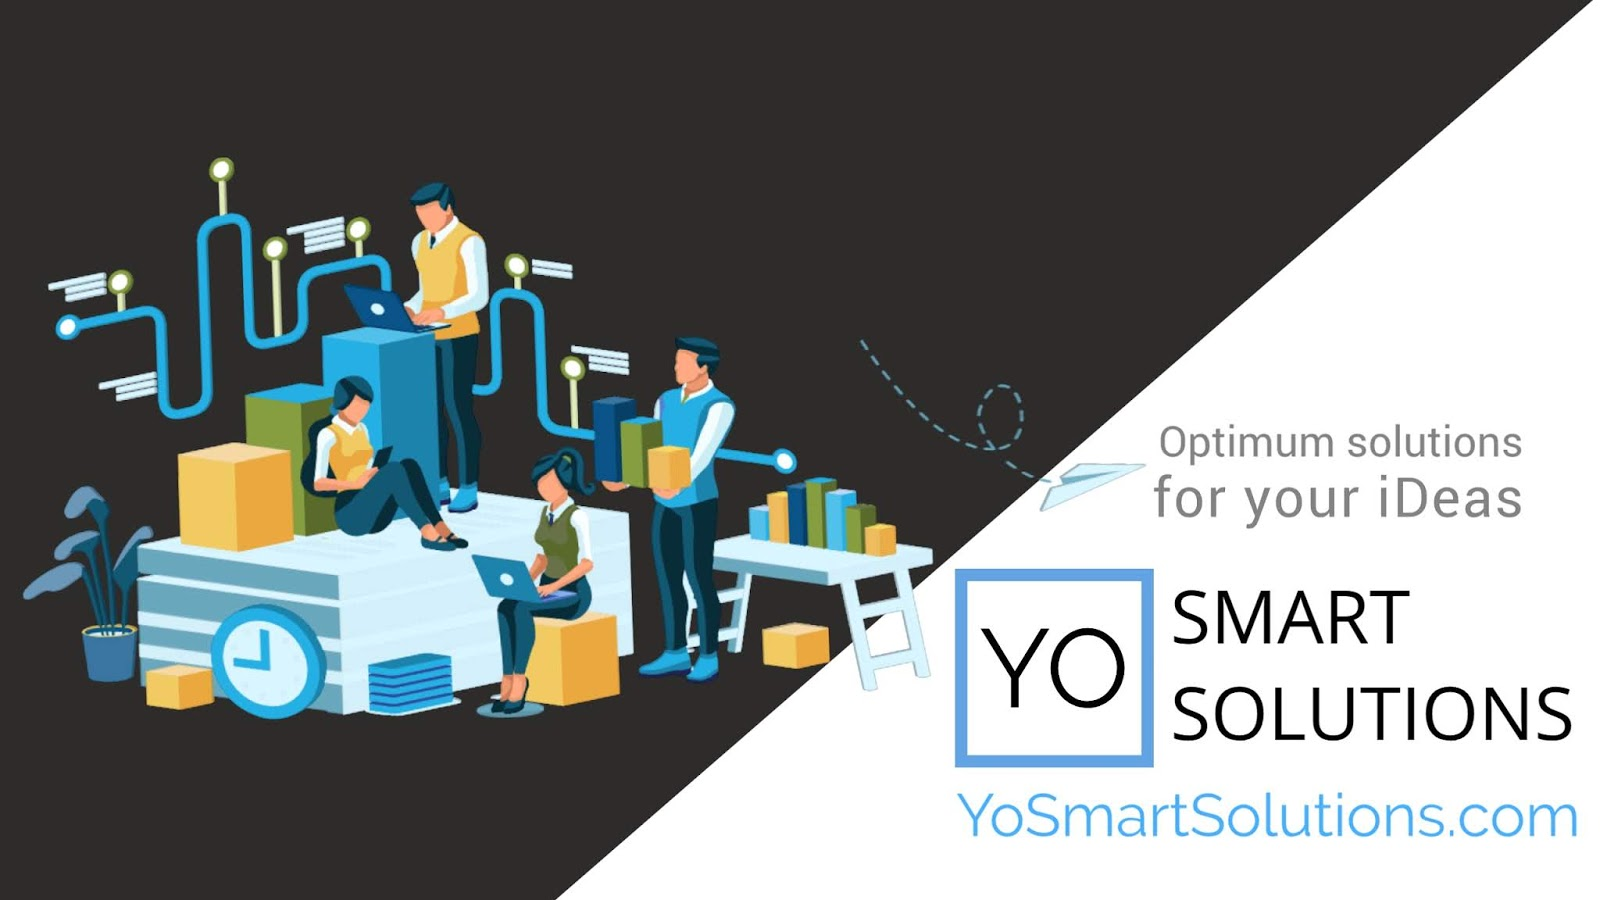 YoSmartSolutions.com